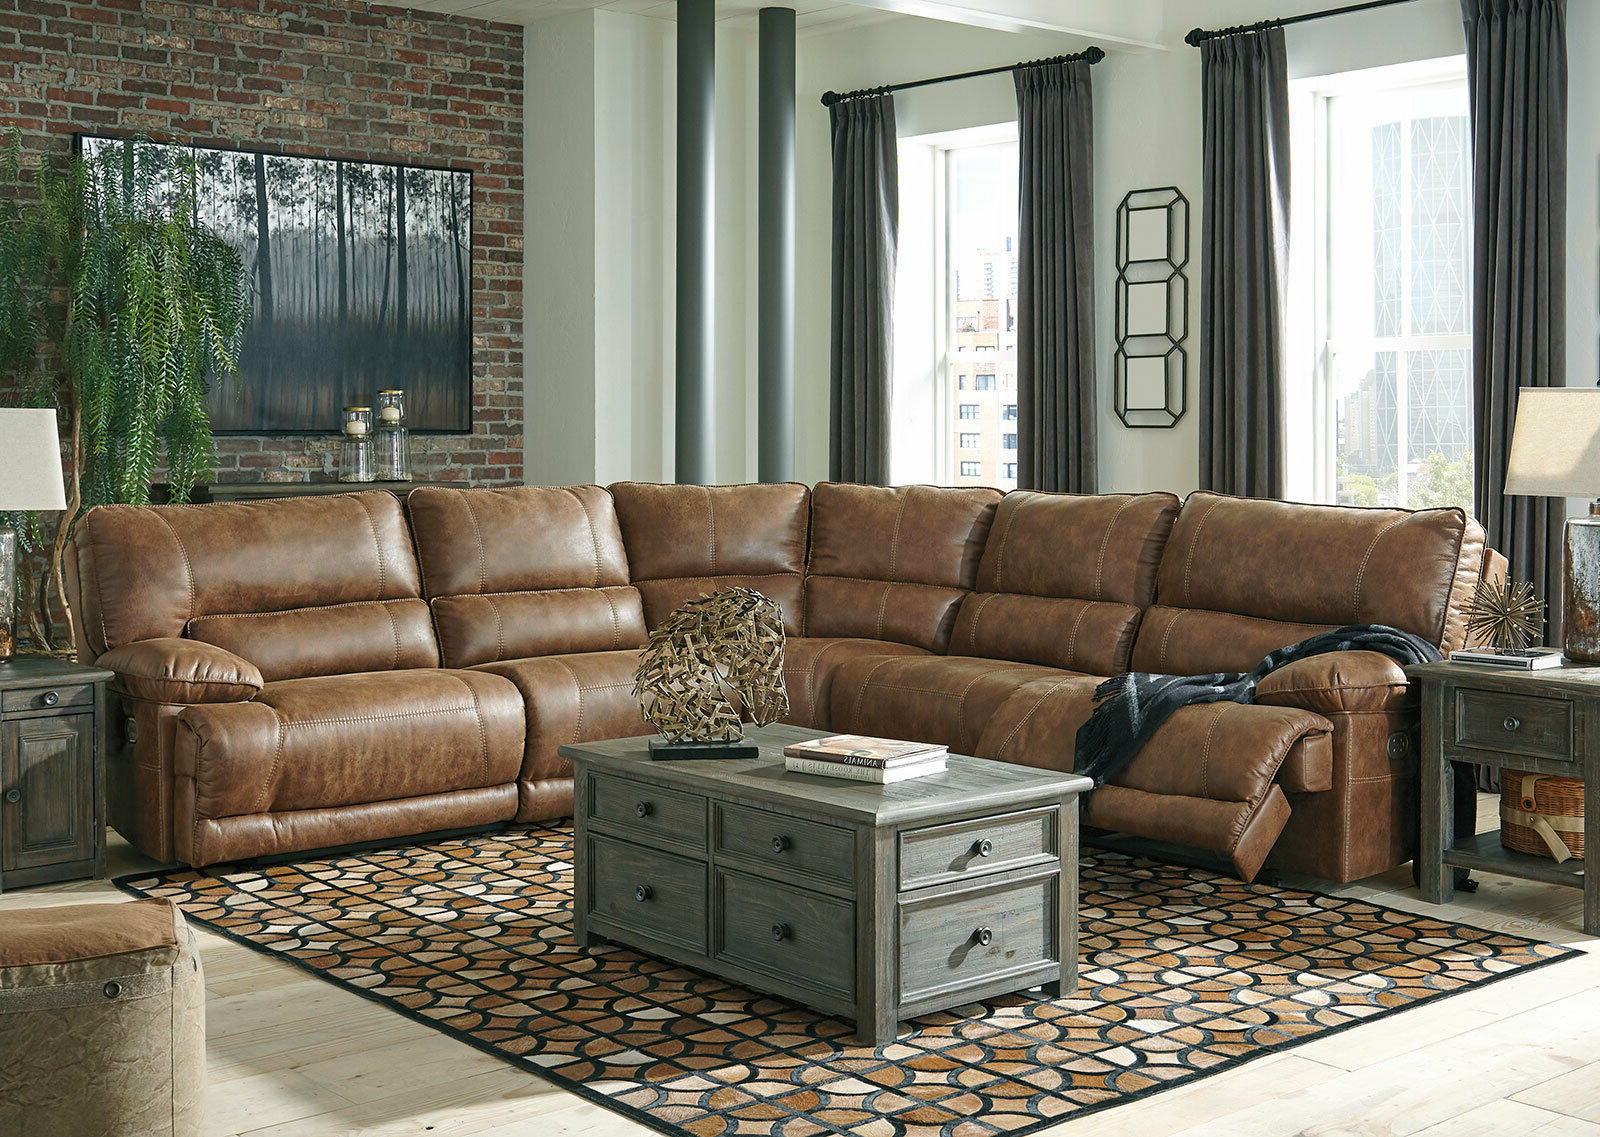 3Pc Faux Leather Sectional Sofas Brown In Favorite Living Room 5 Piece Sectional Brown Faux Leather Power (View 20 of 25)